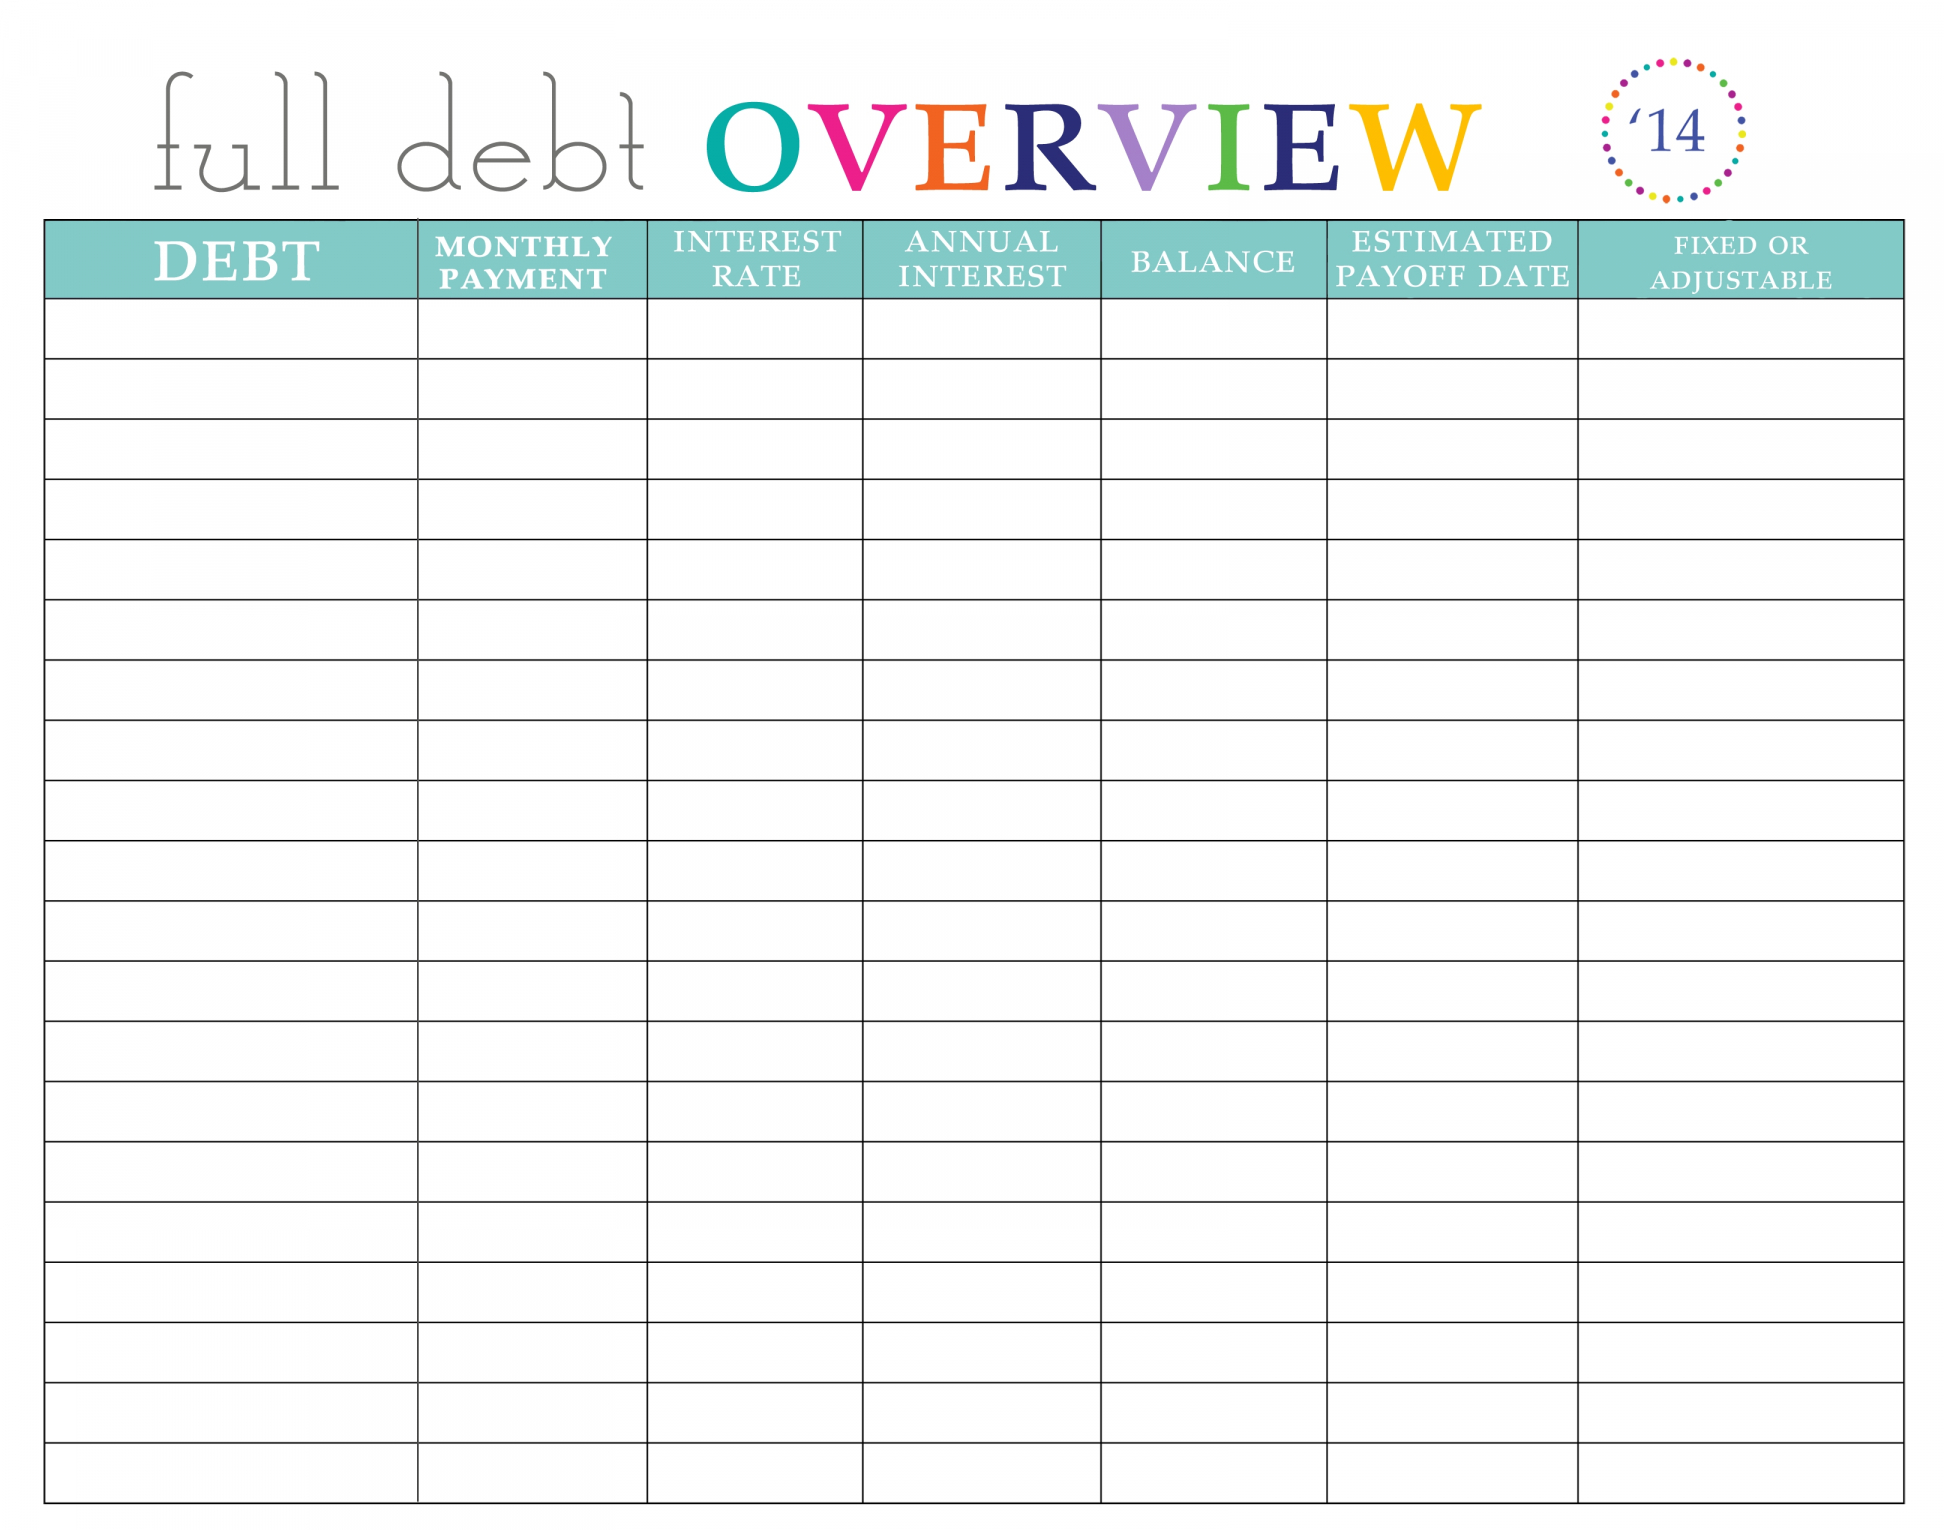 Debt Reduction Spreadsheet Free Pay Off Debt Spreadsheet Free For Debt Reduction Spreadsheet Free